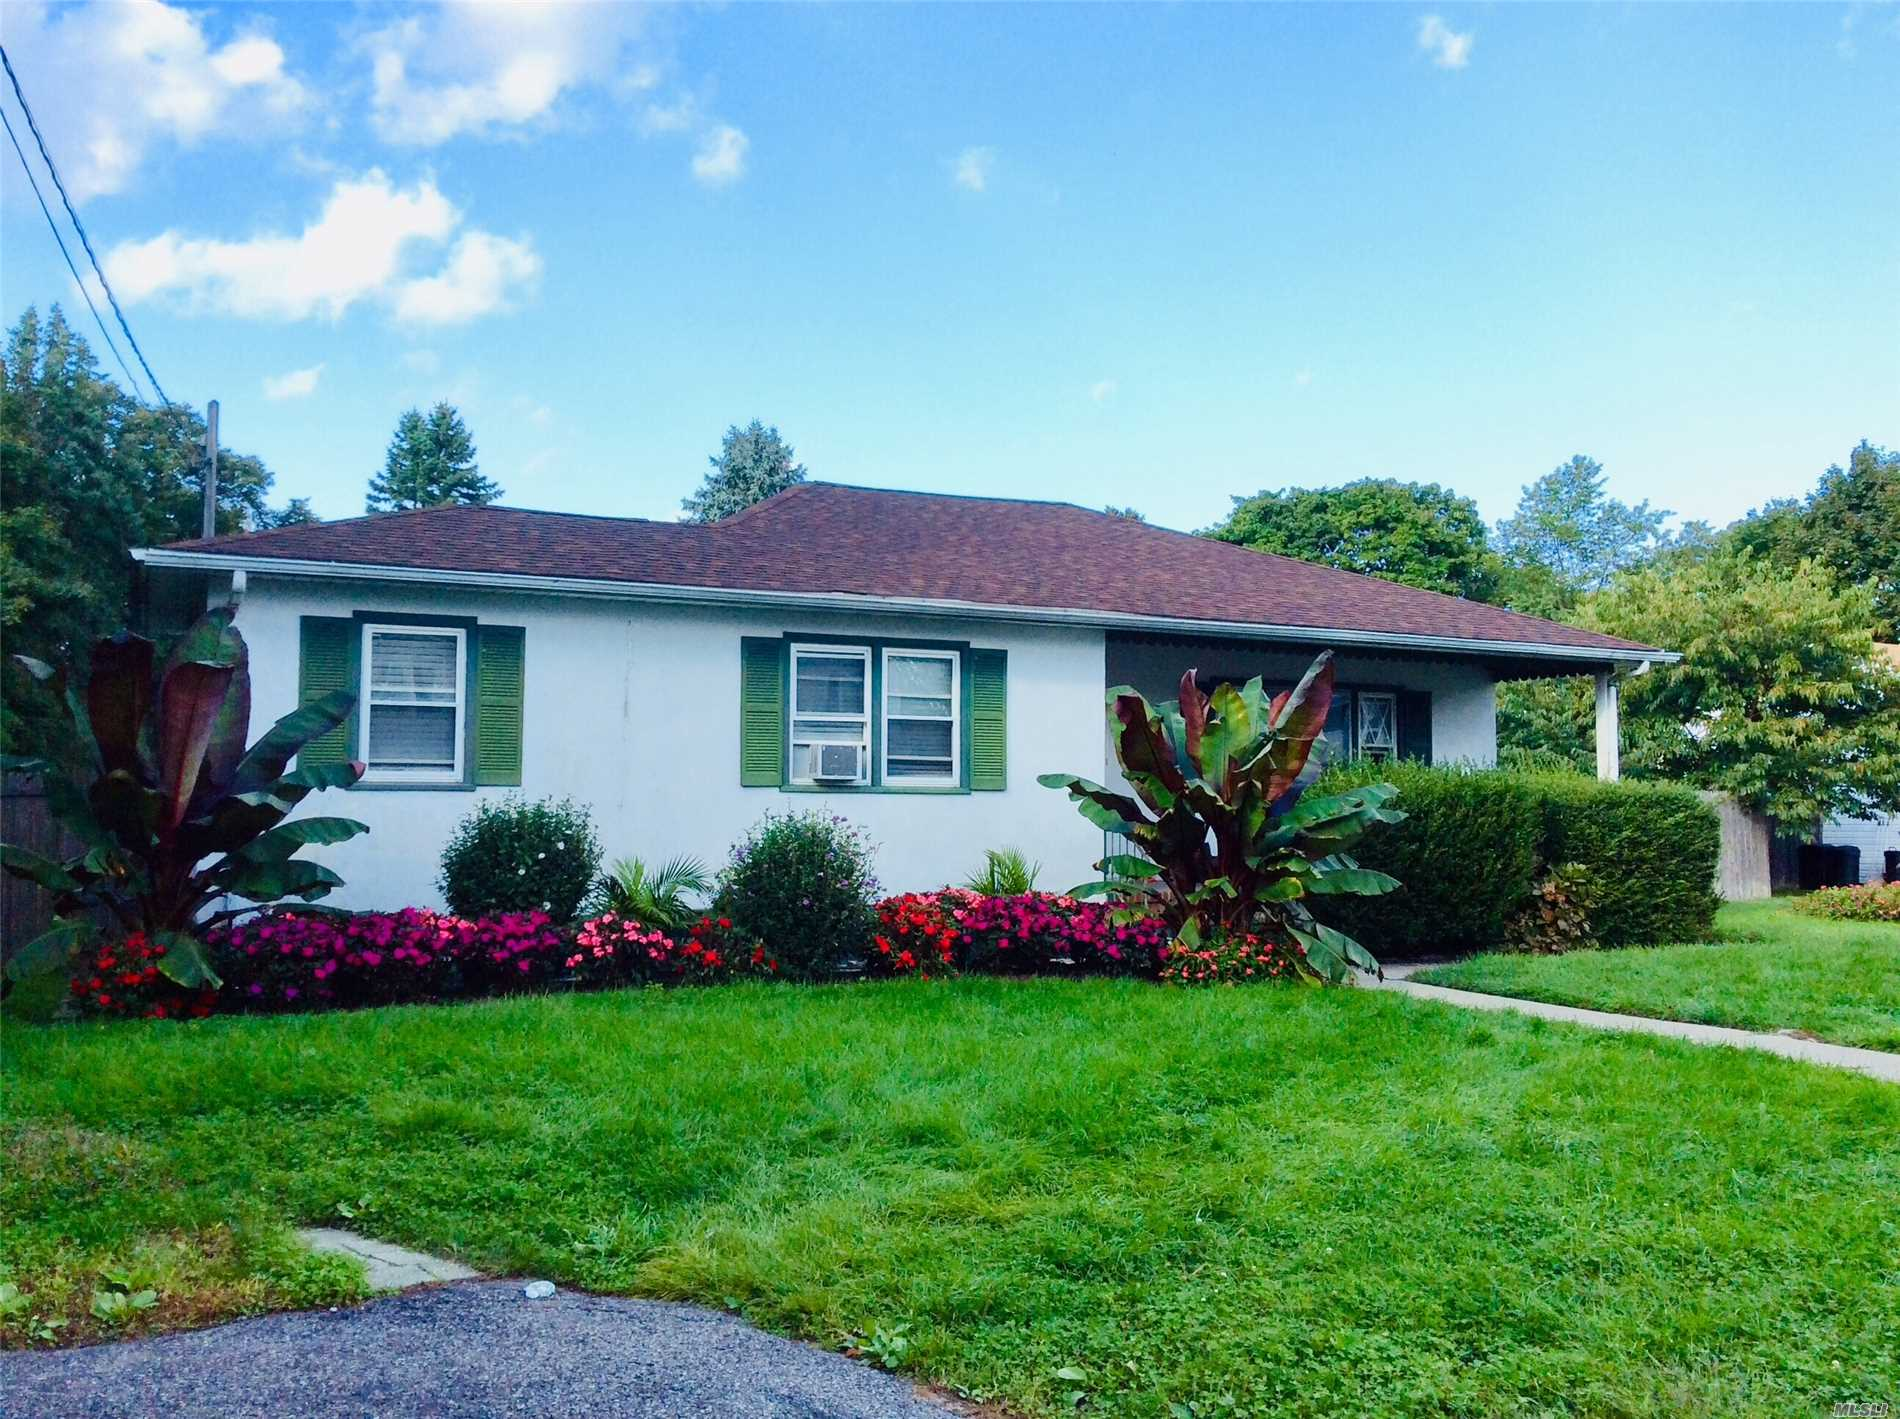 Photo of home for sale at 89 Babylon St, Islip Terrace NY